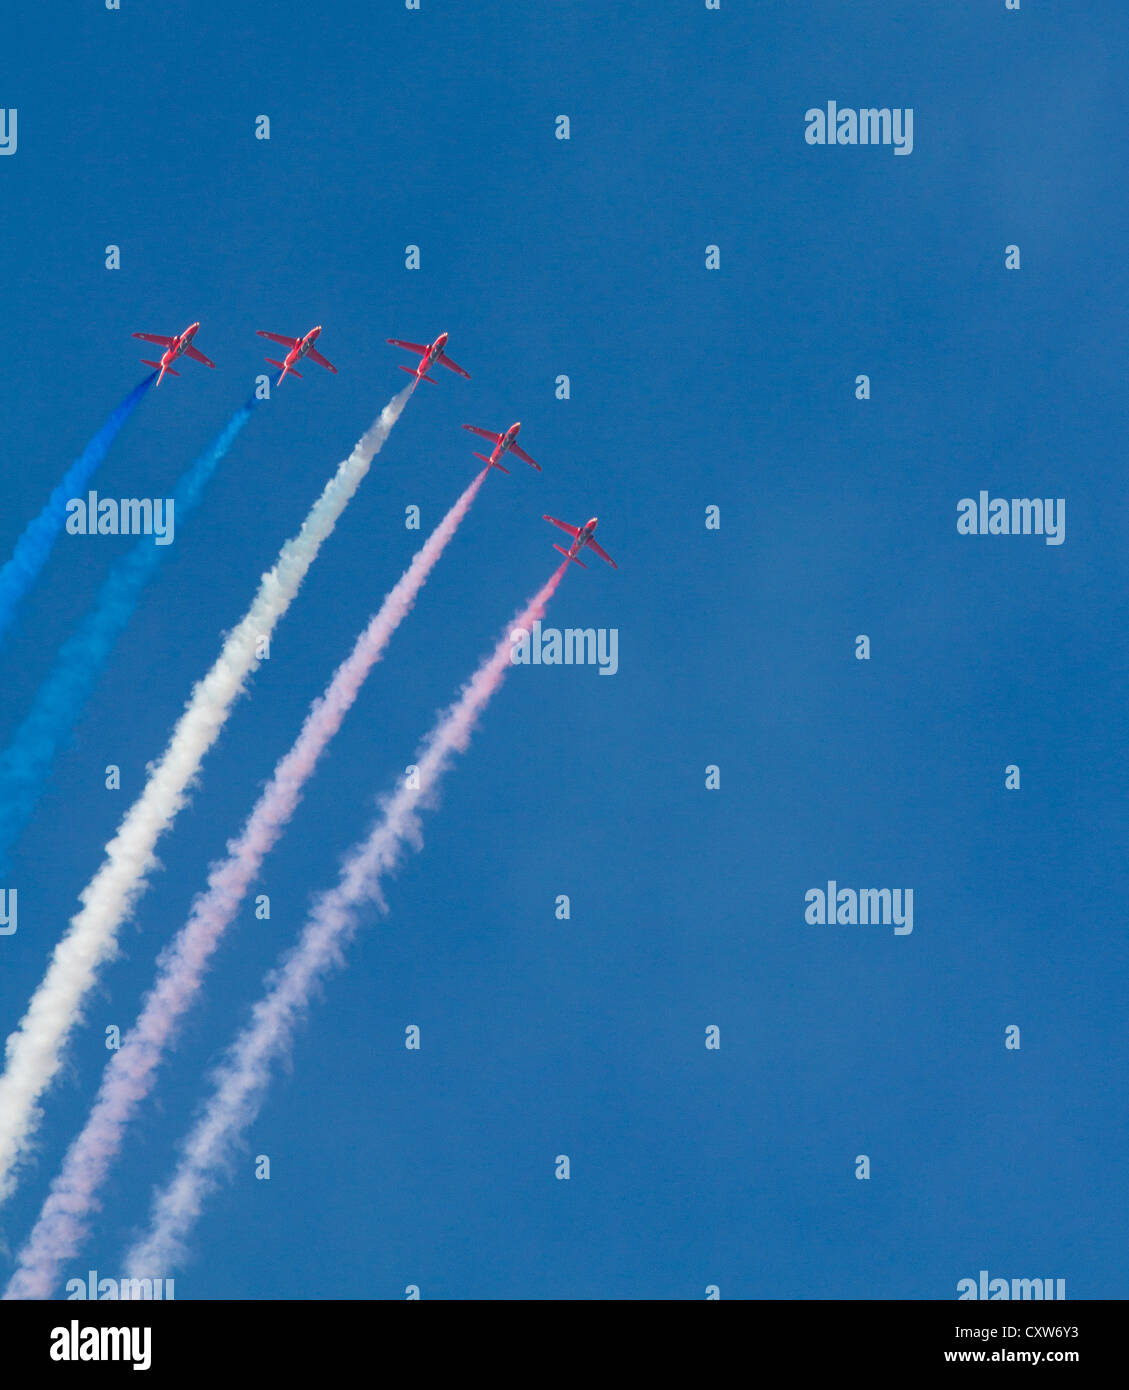 Red Arrows jets pink white blue smoke against vibrant blue sky Stock Photo